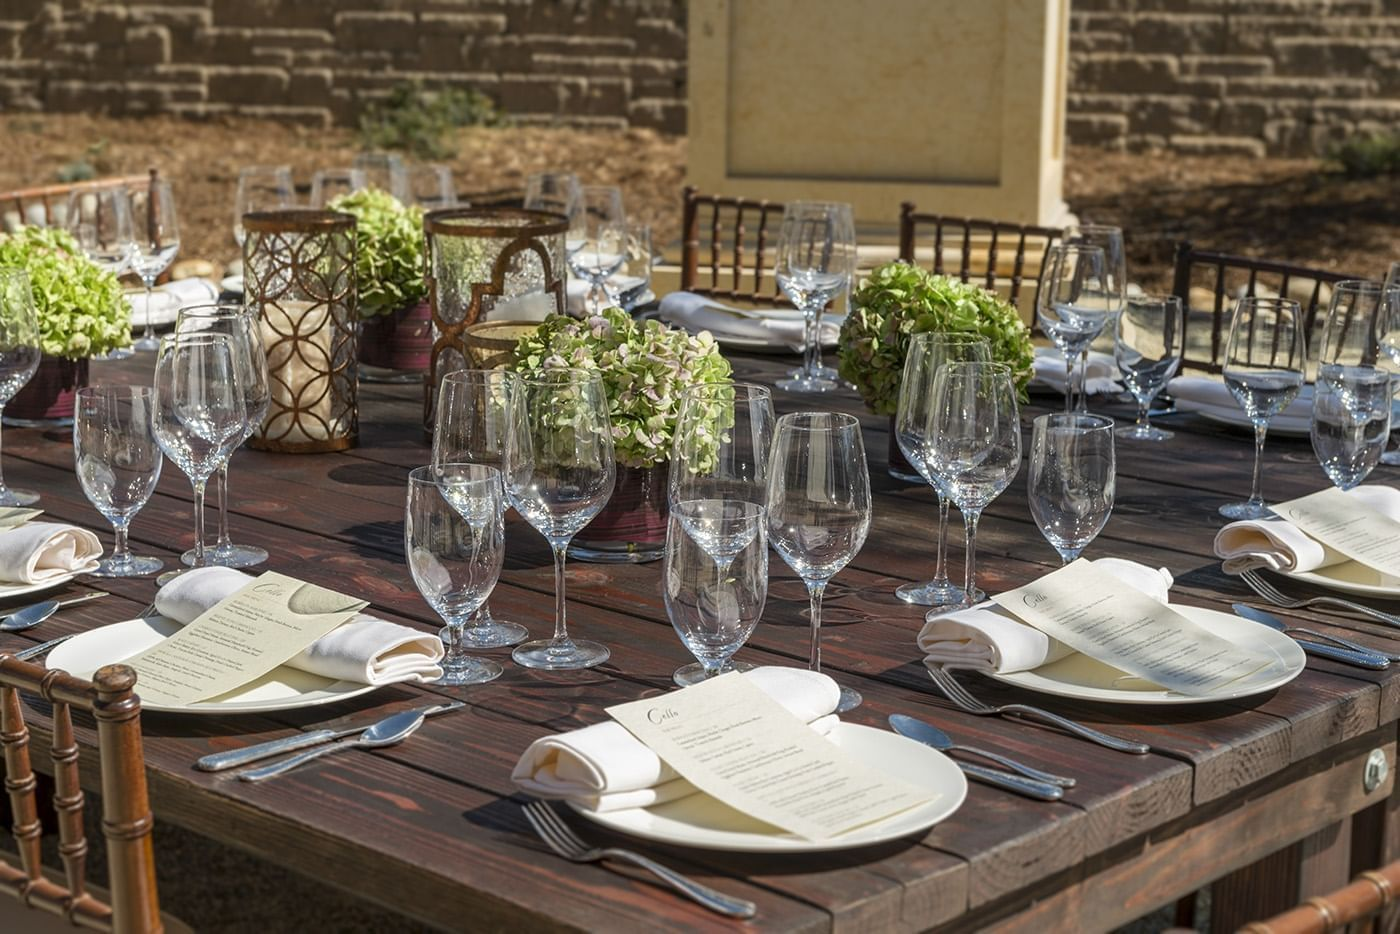 Outdoor wooden table prepared for dining